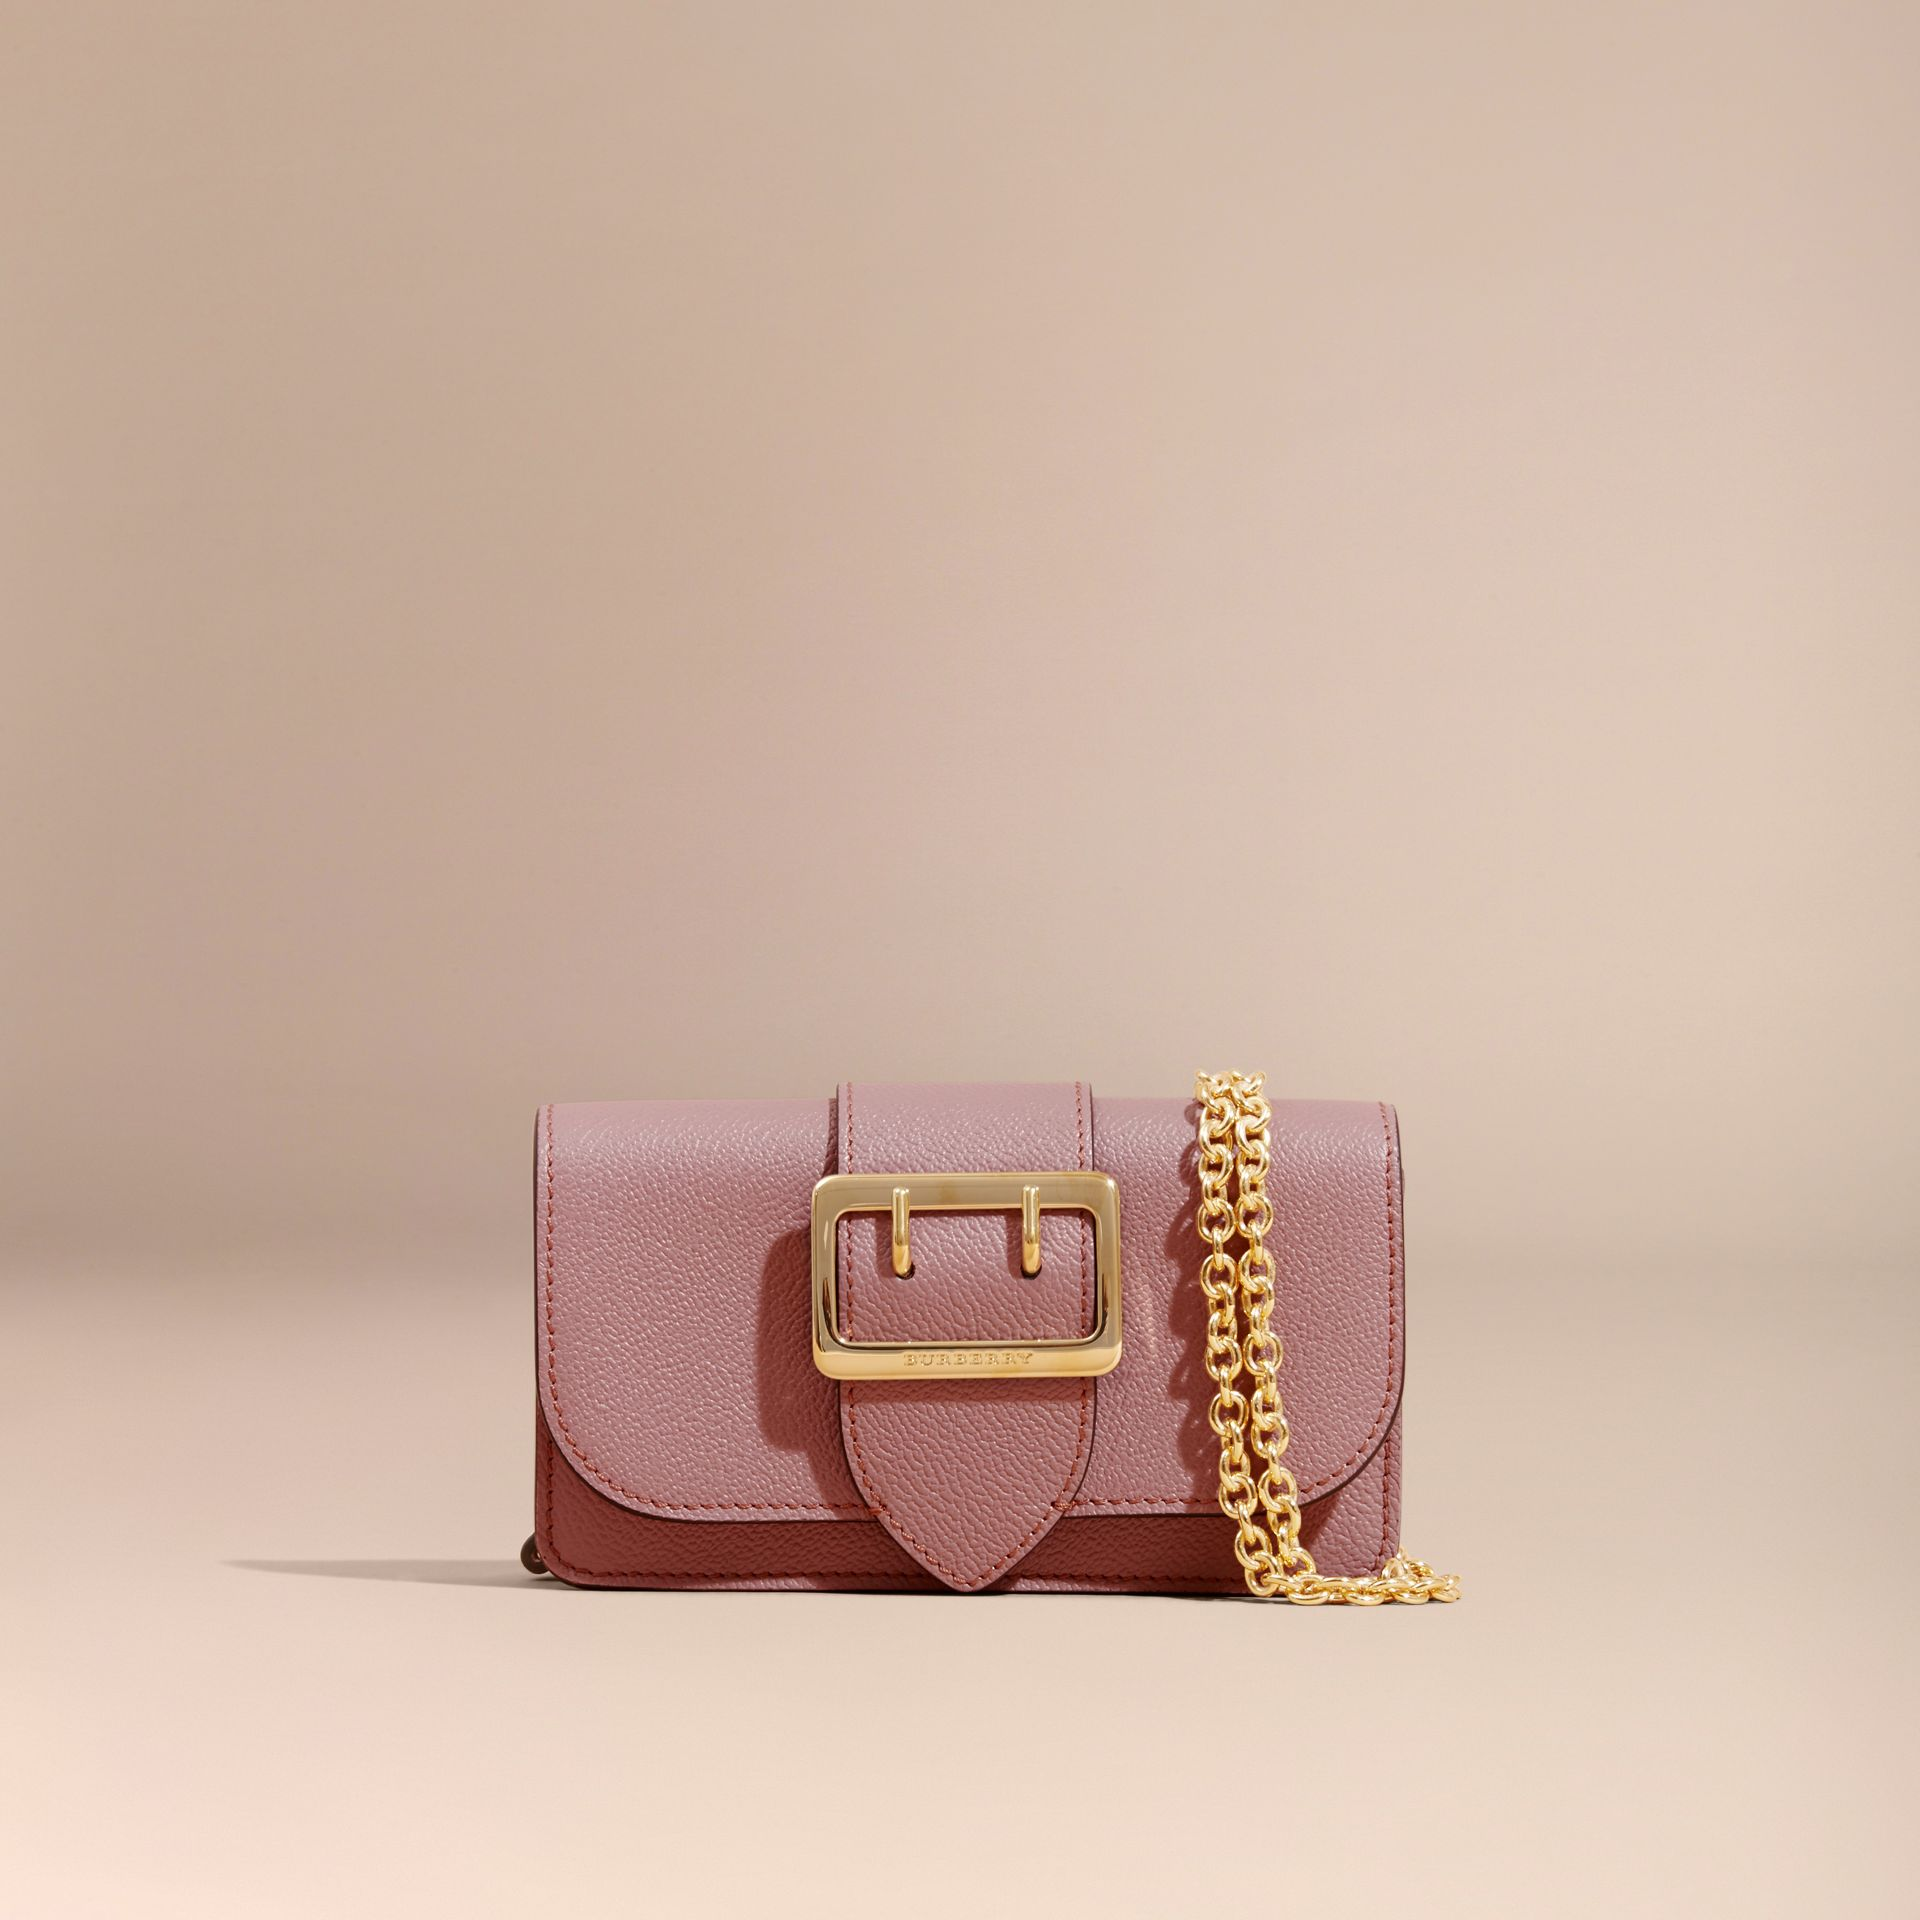 The Mini Buckle Bag in Grainy Leather in Dusty Pink - Women | Burberry - gallery image 9